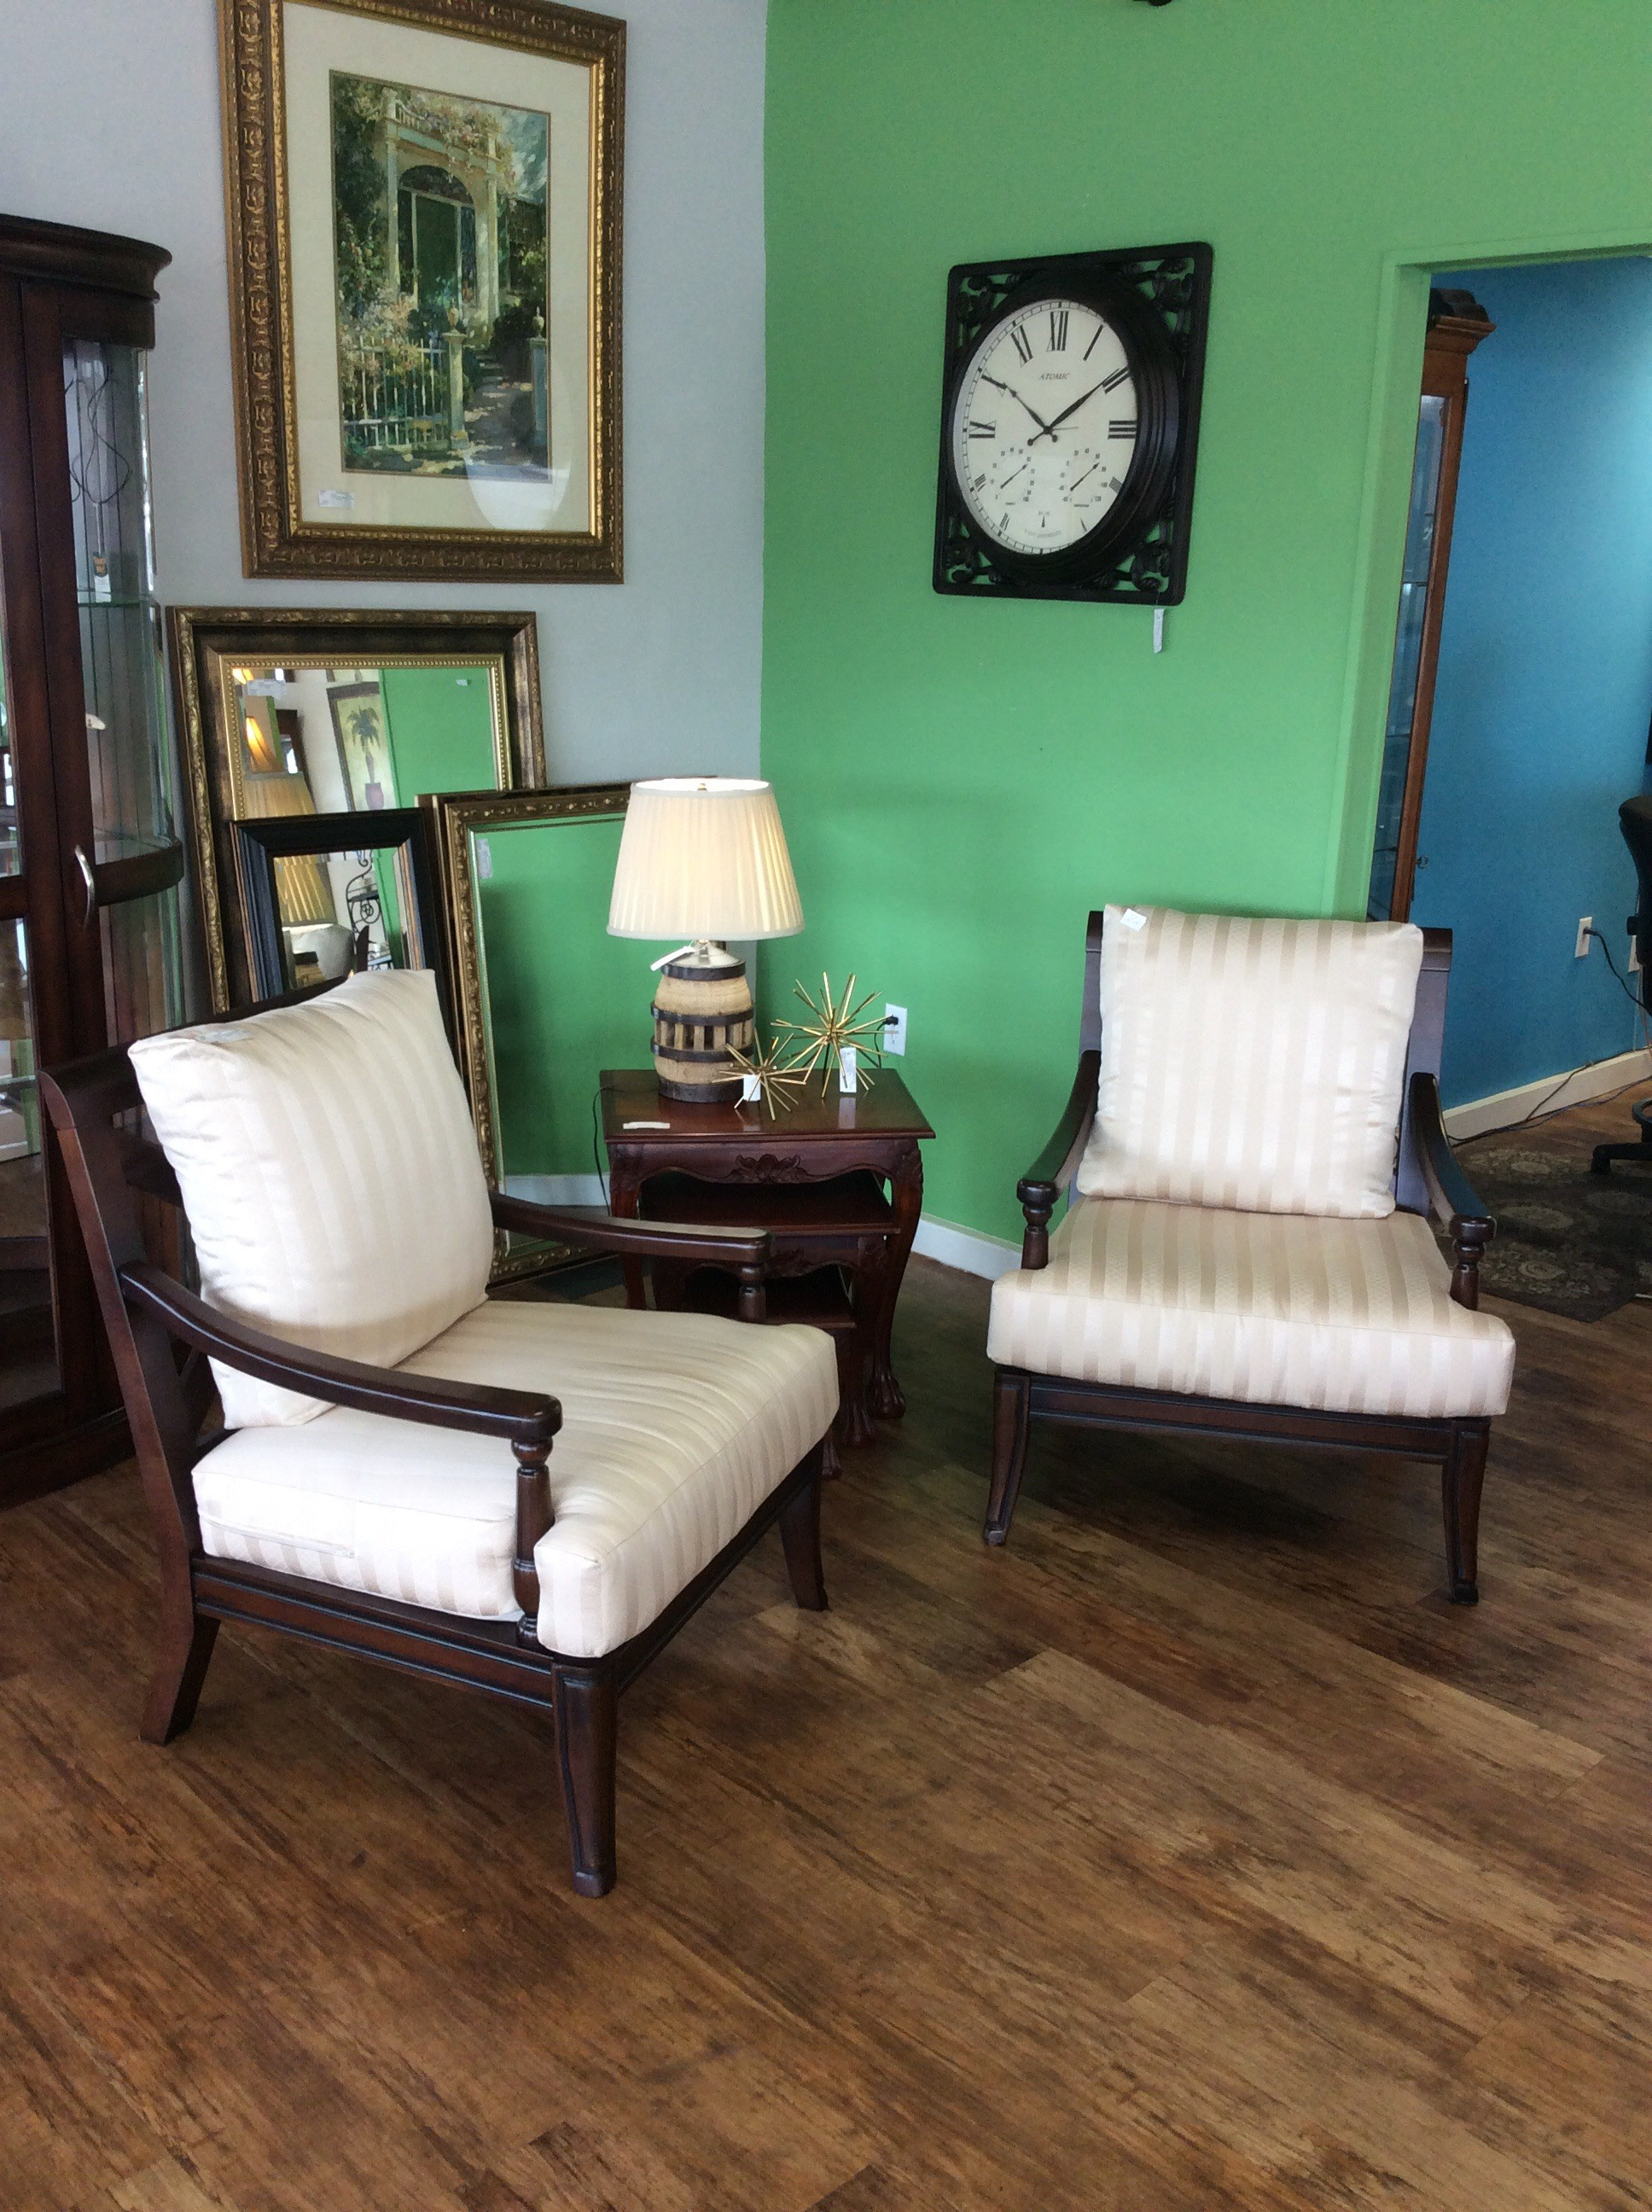 This comfy and oversized pair of armchairs are lovely! They feature a dark wood finish and are upholstered in a soft, cream colored stripe that adds a touch of glamour.